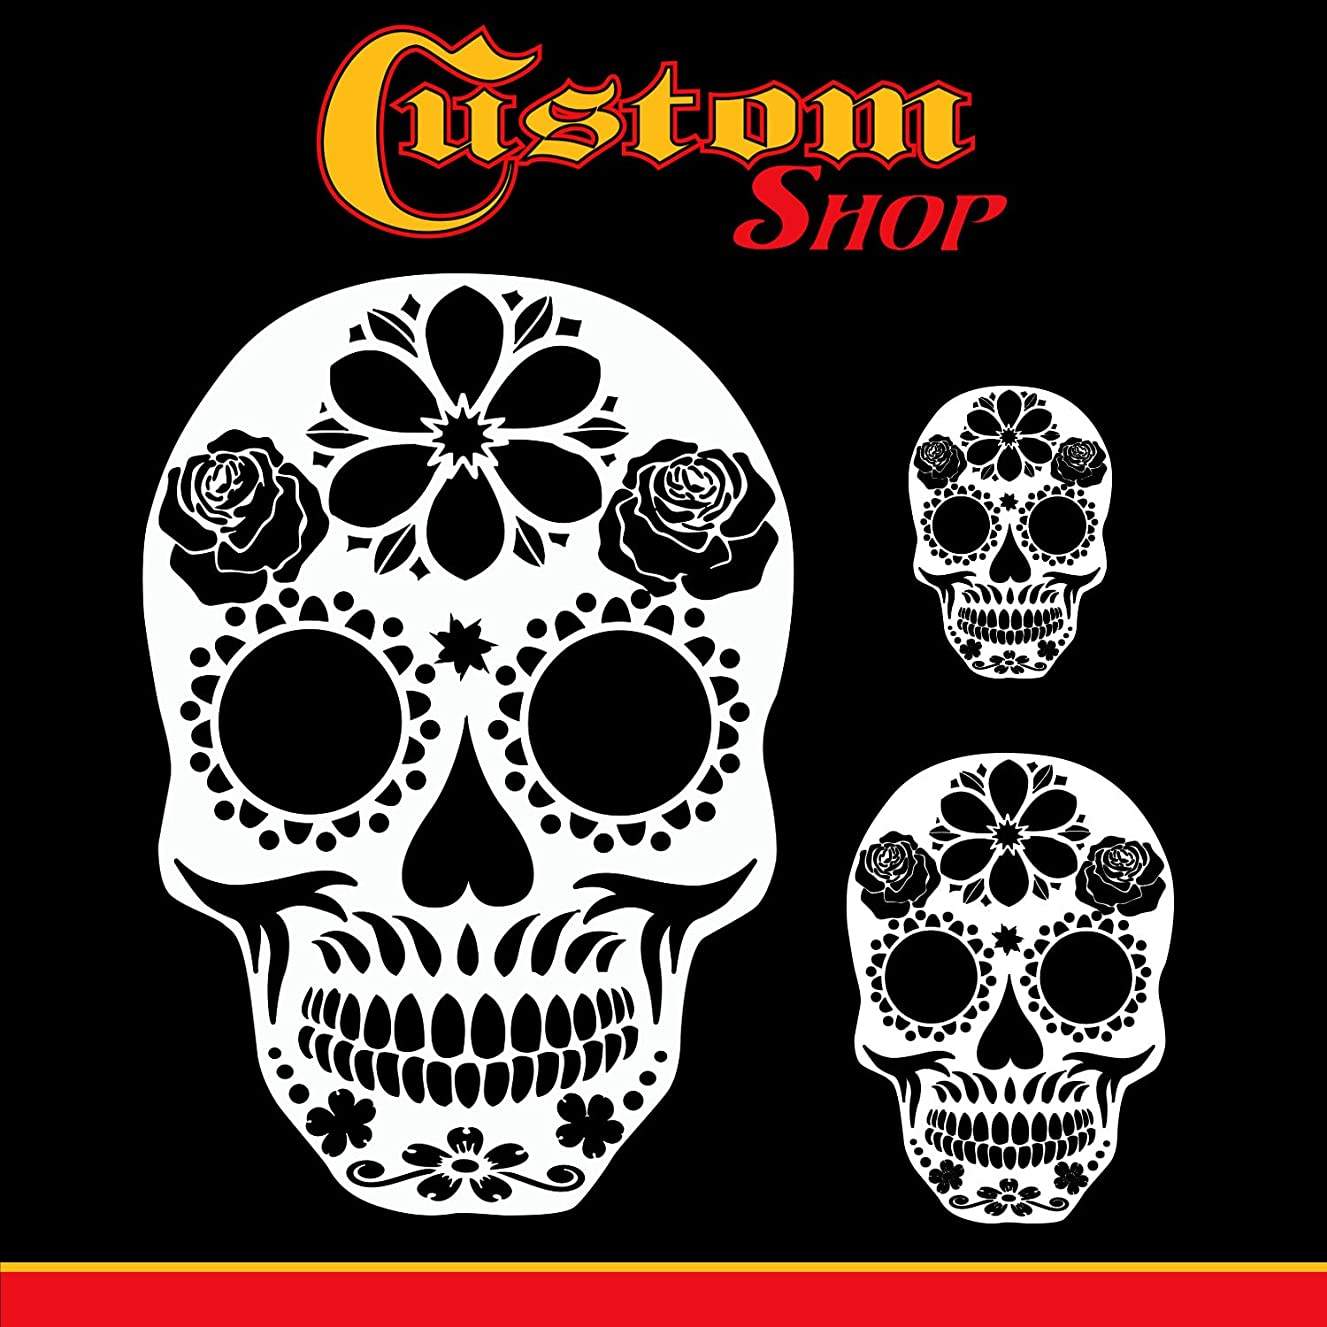 Custom Shop Airbrush Sugar Skull Day of The Dead Stencil Set (Skull Design #14 in 3 Scale Sizes) - Laser Cut Reusable Templates